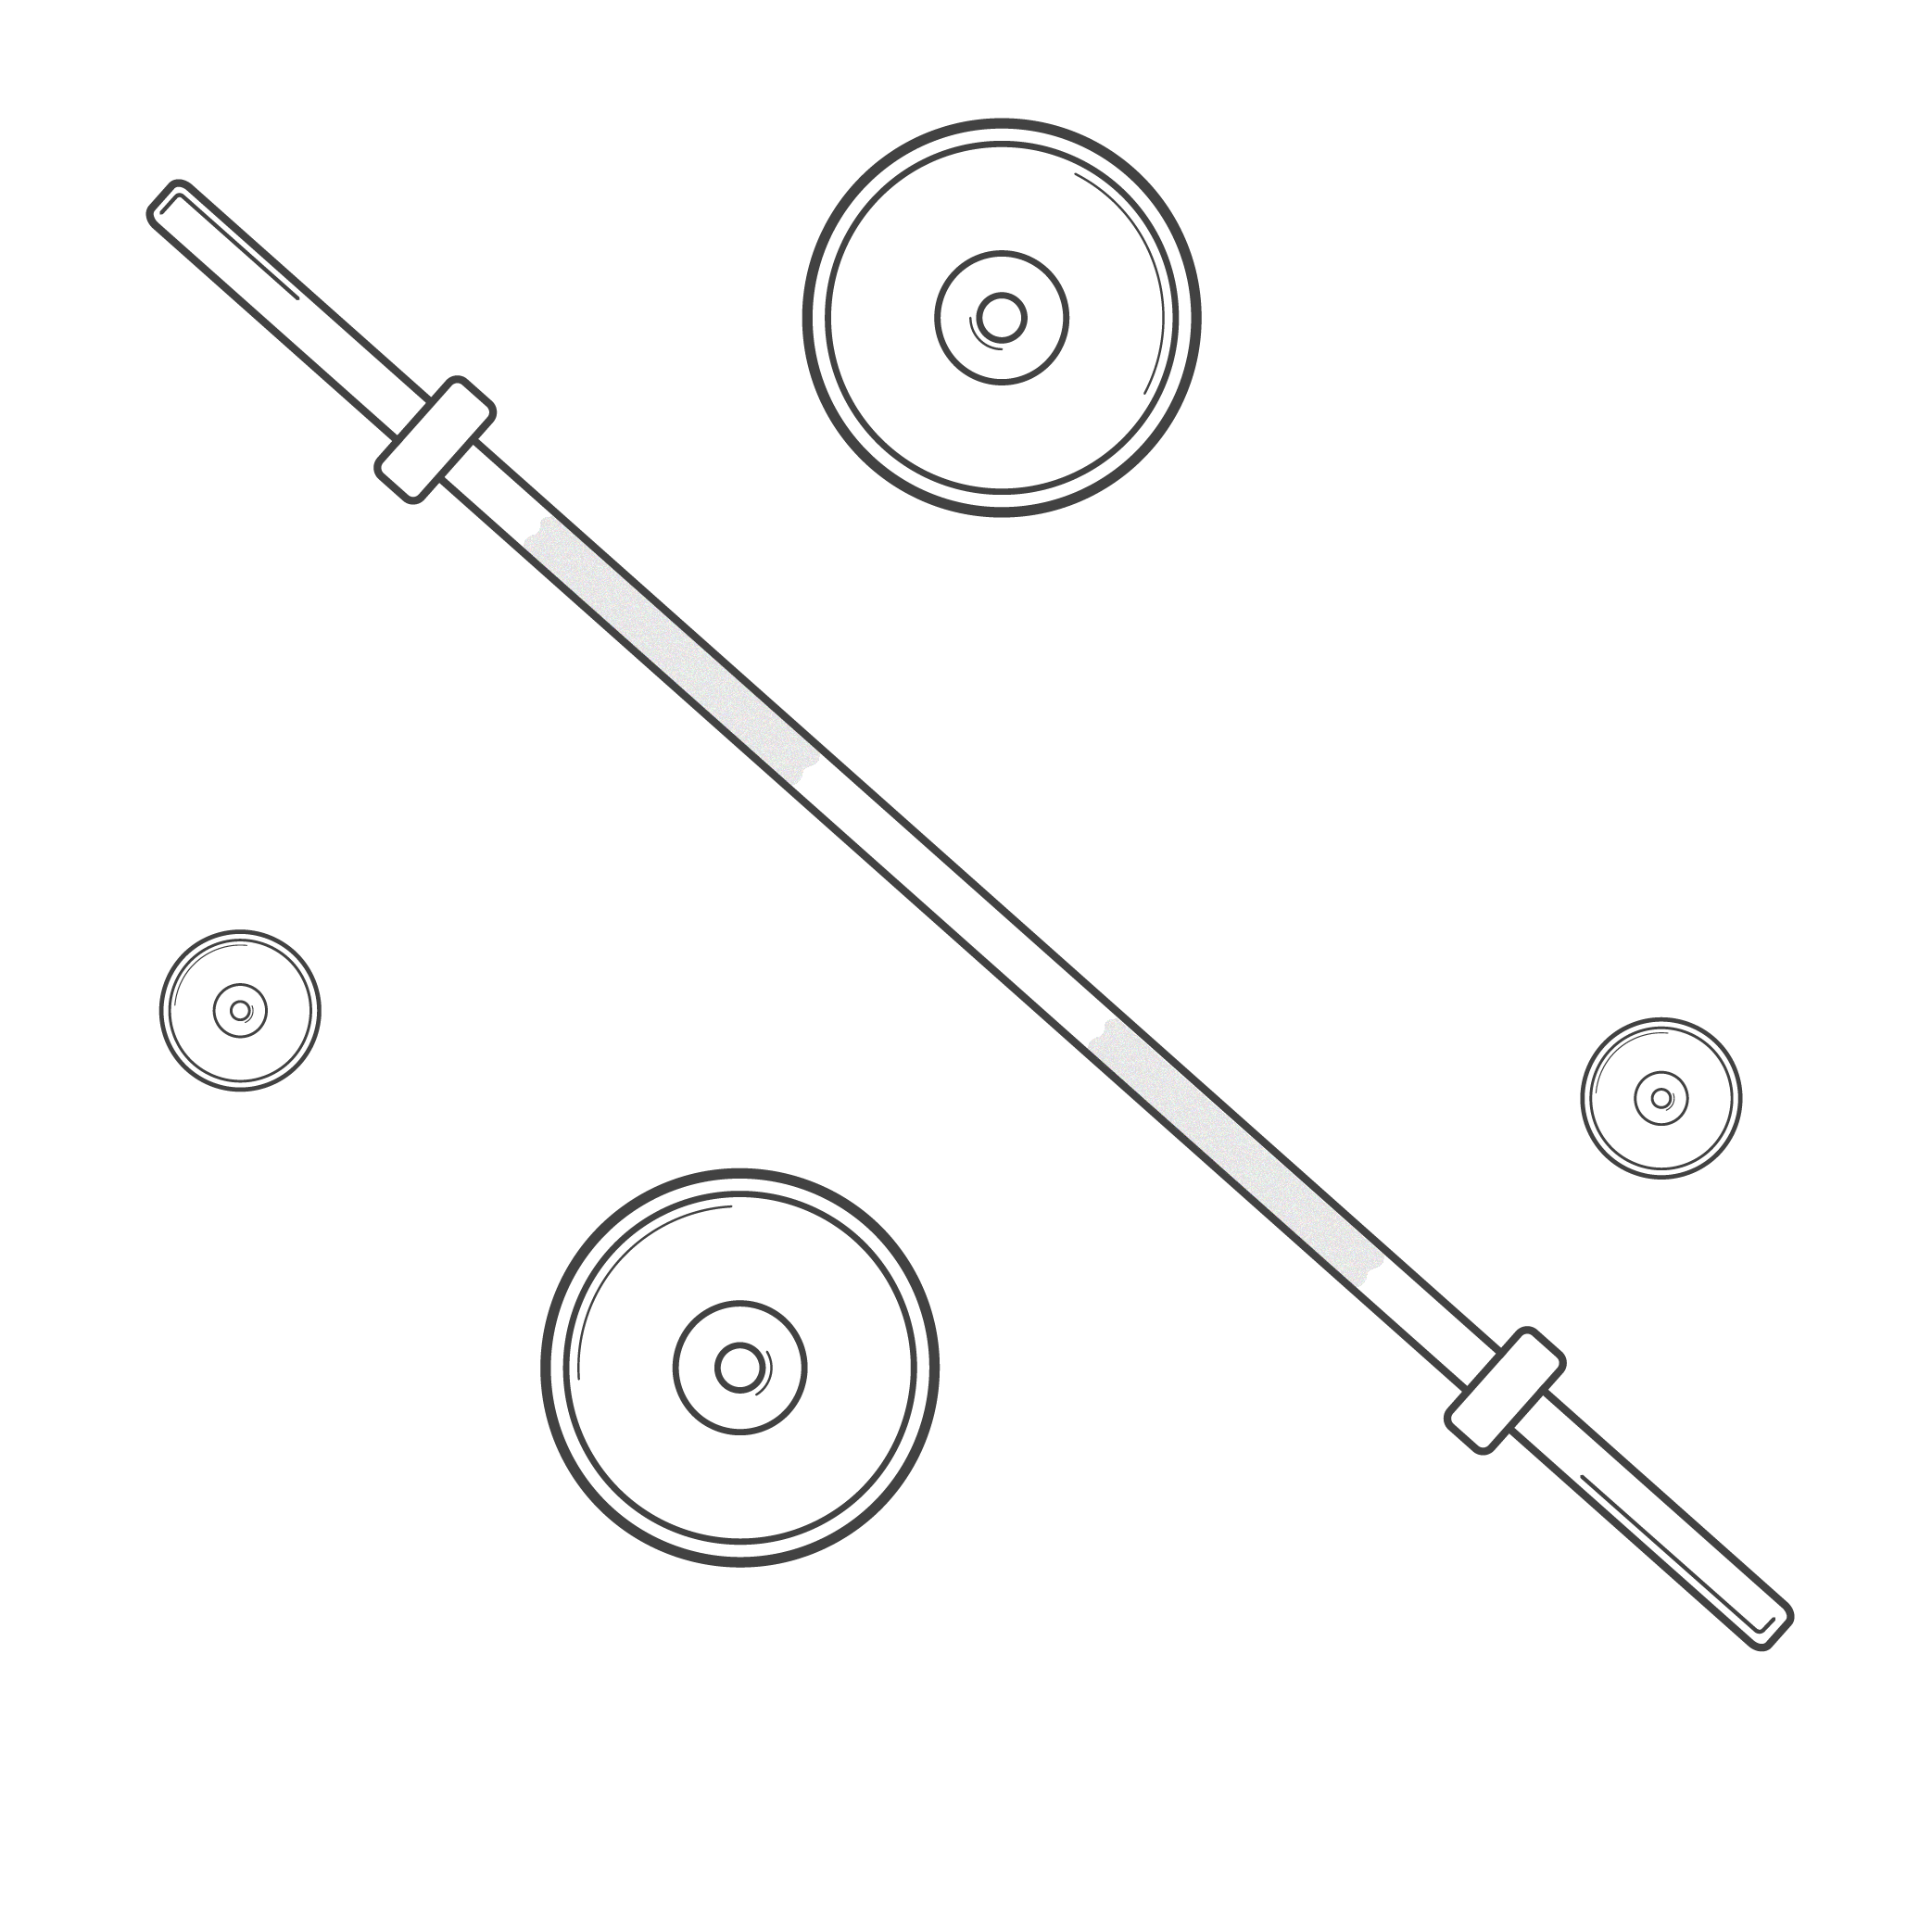 weightlifting bar graphic